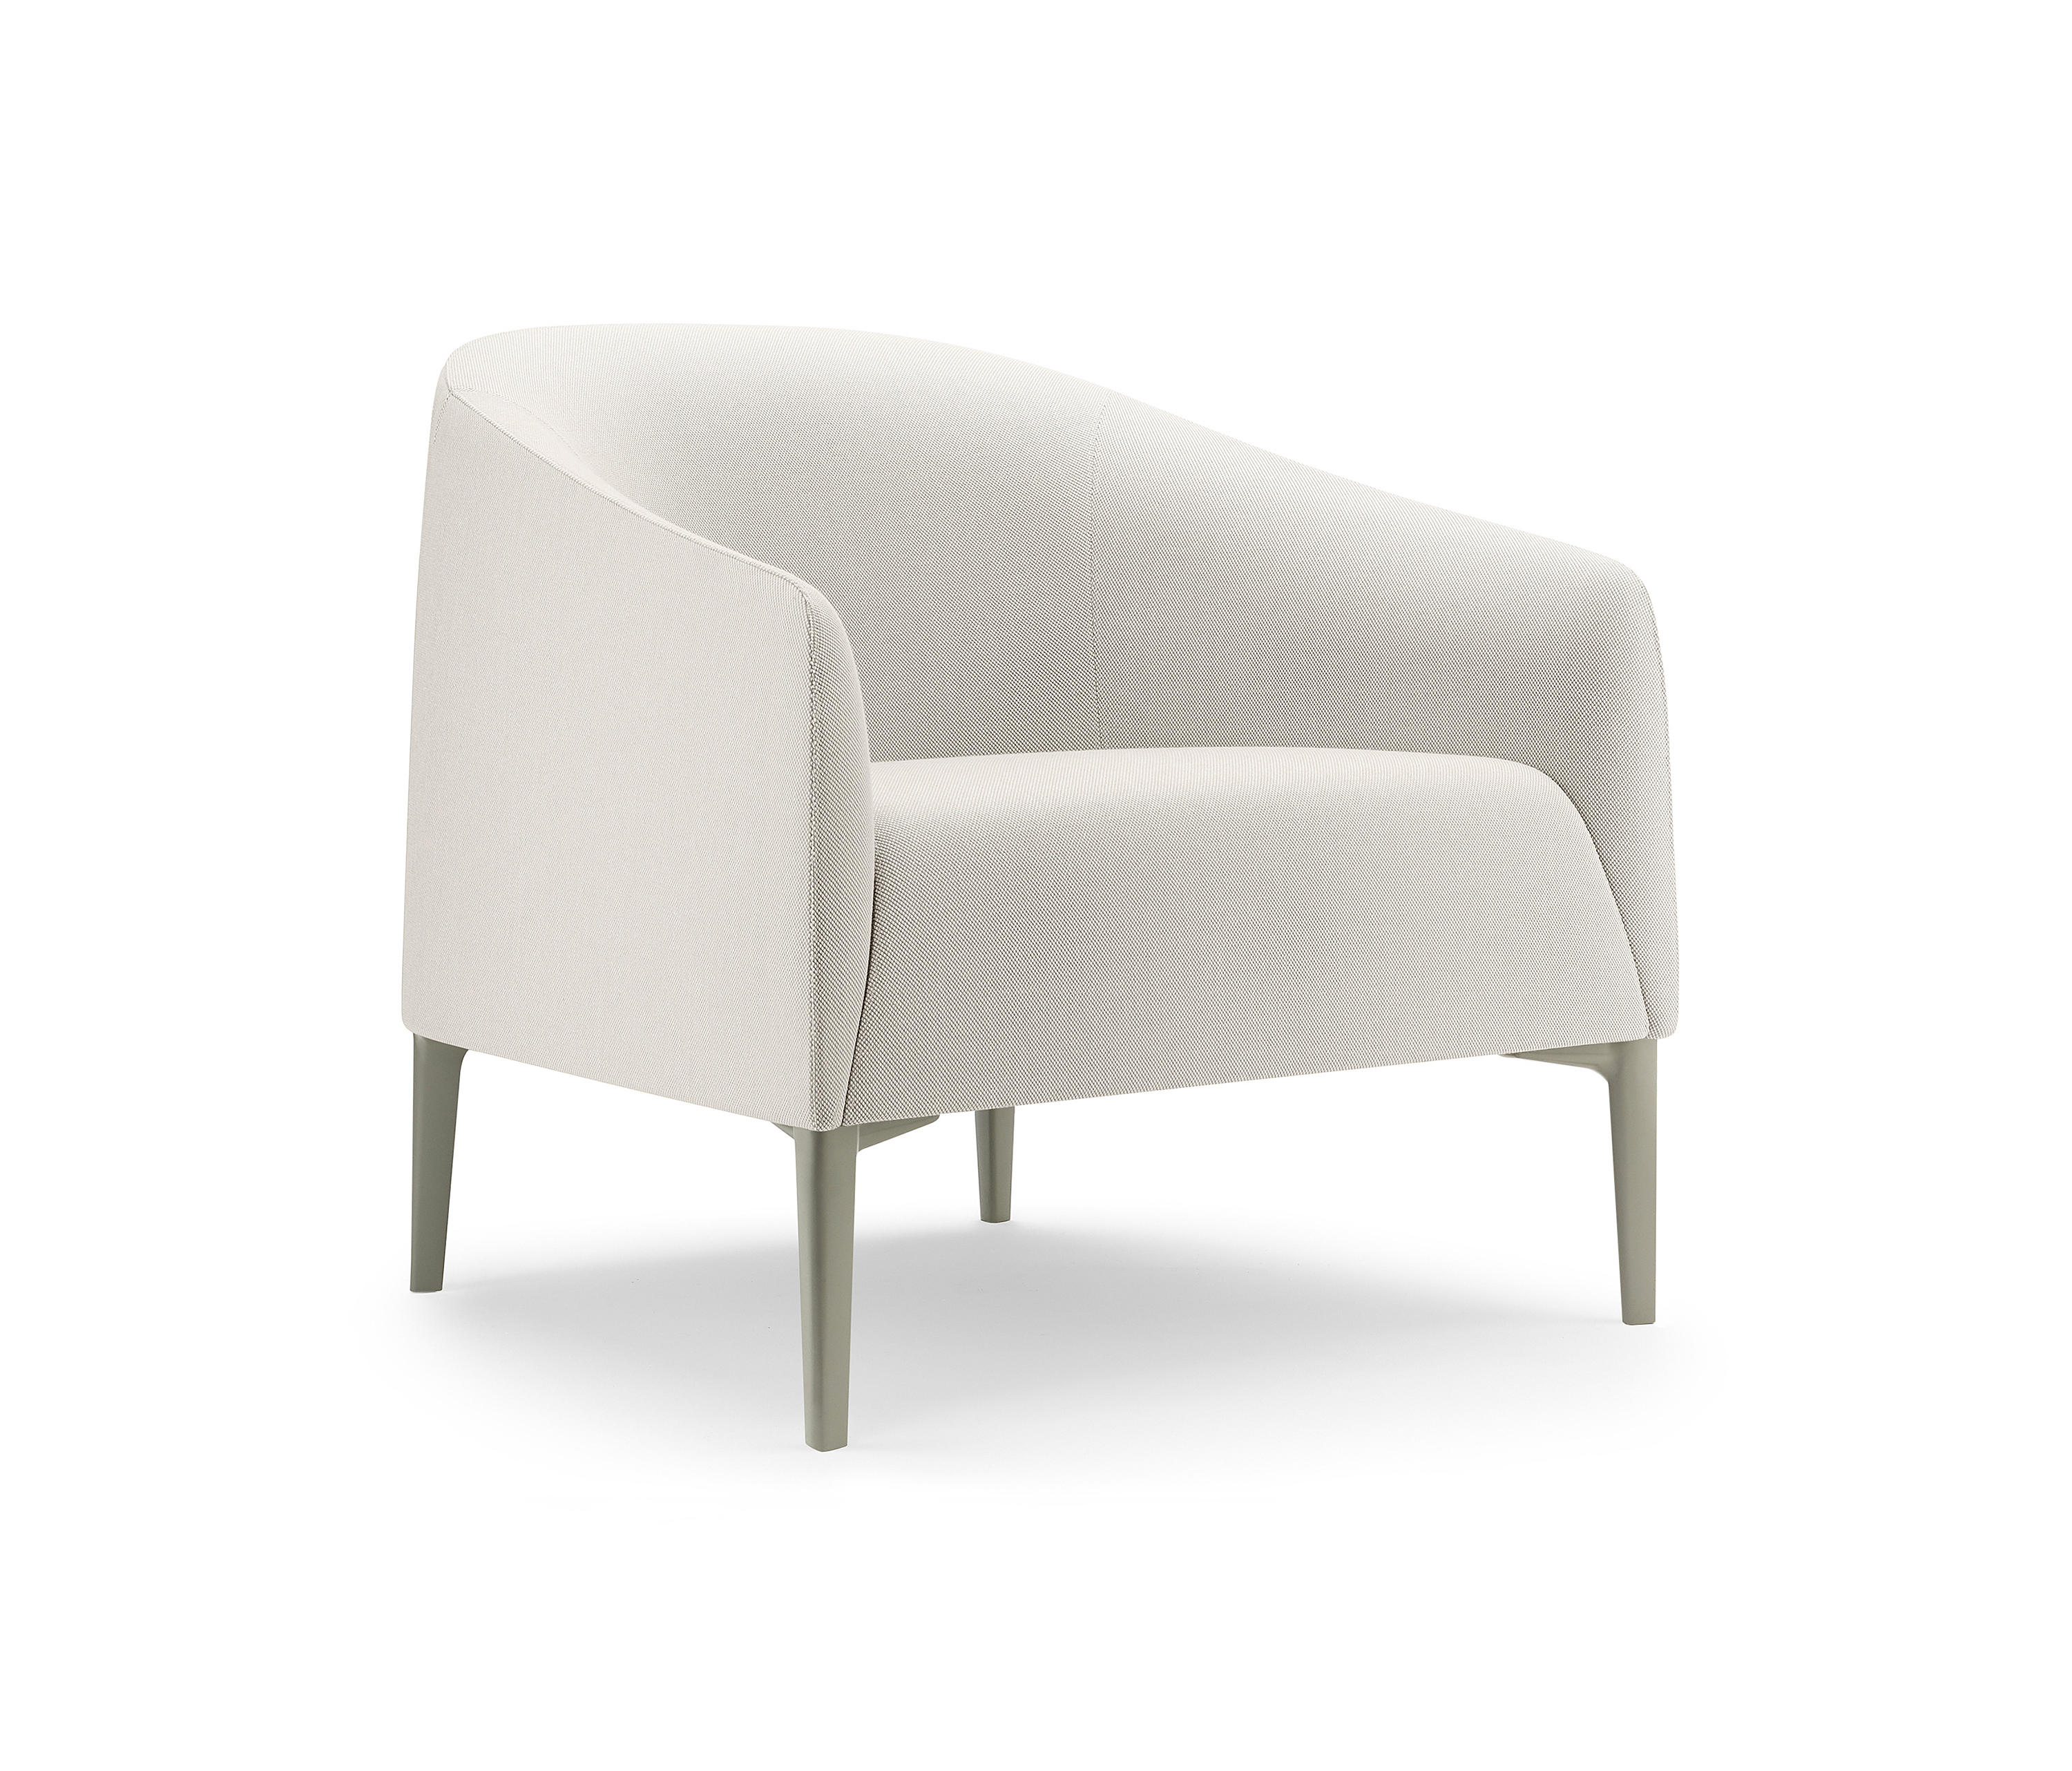 new authentic online here good quality MANTA ARMCHAIR - Armchairs from Boss Design | Architonic